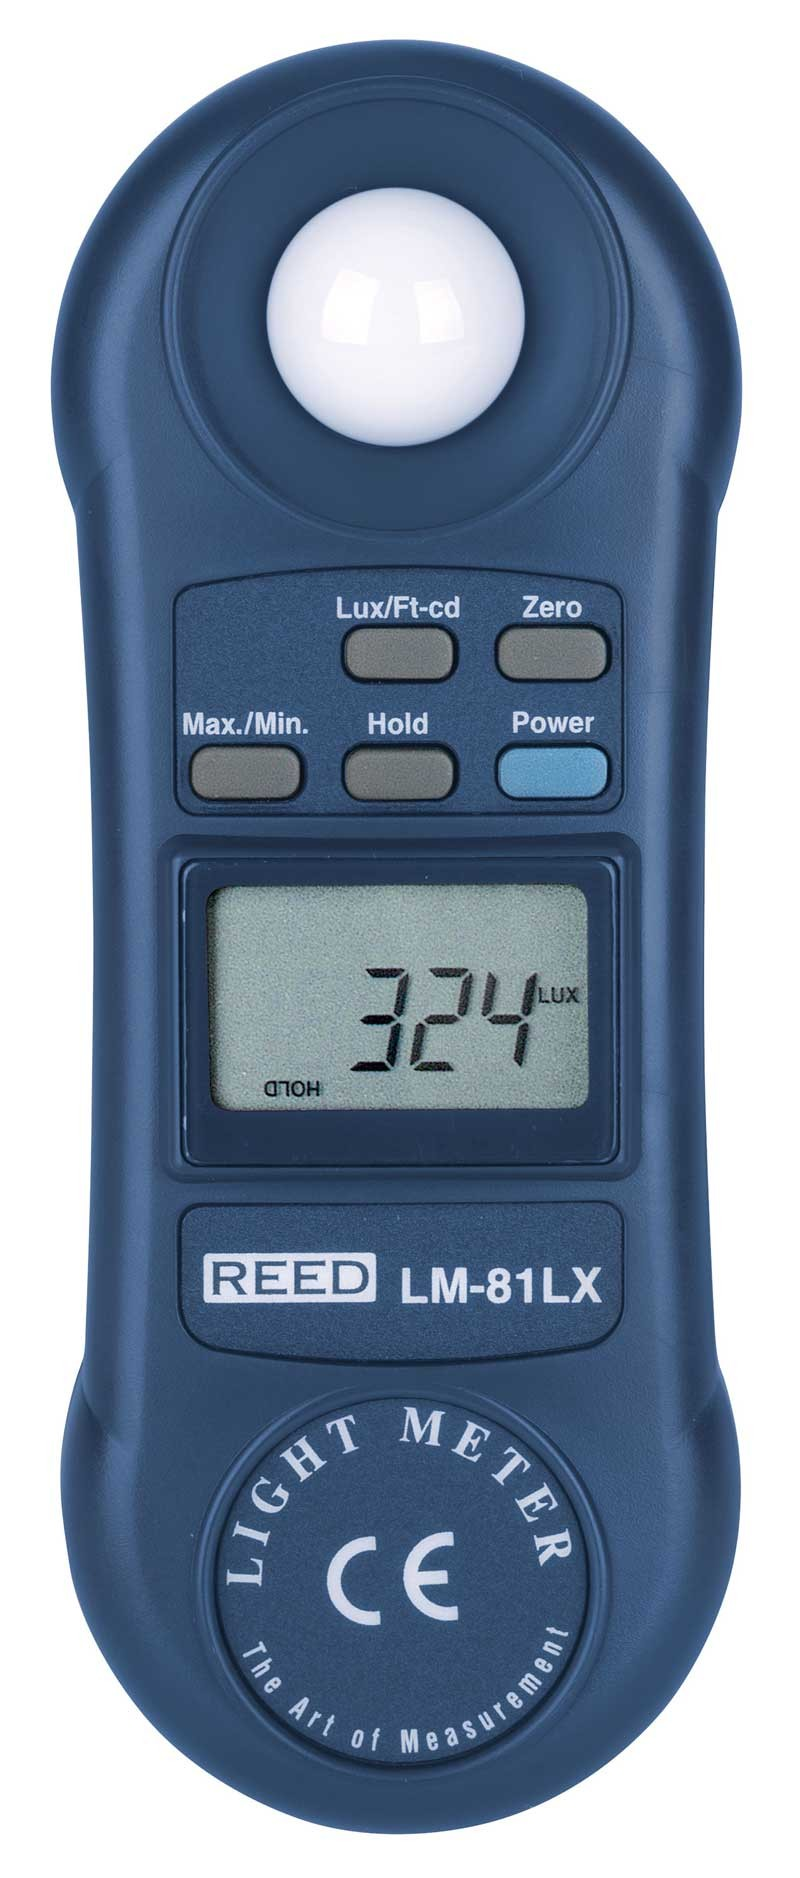 REED LM-81LX Compact Light Meter, 20,000 Lux / 2,000 Foot Candles (Fc)-